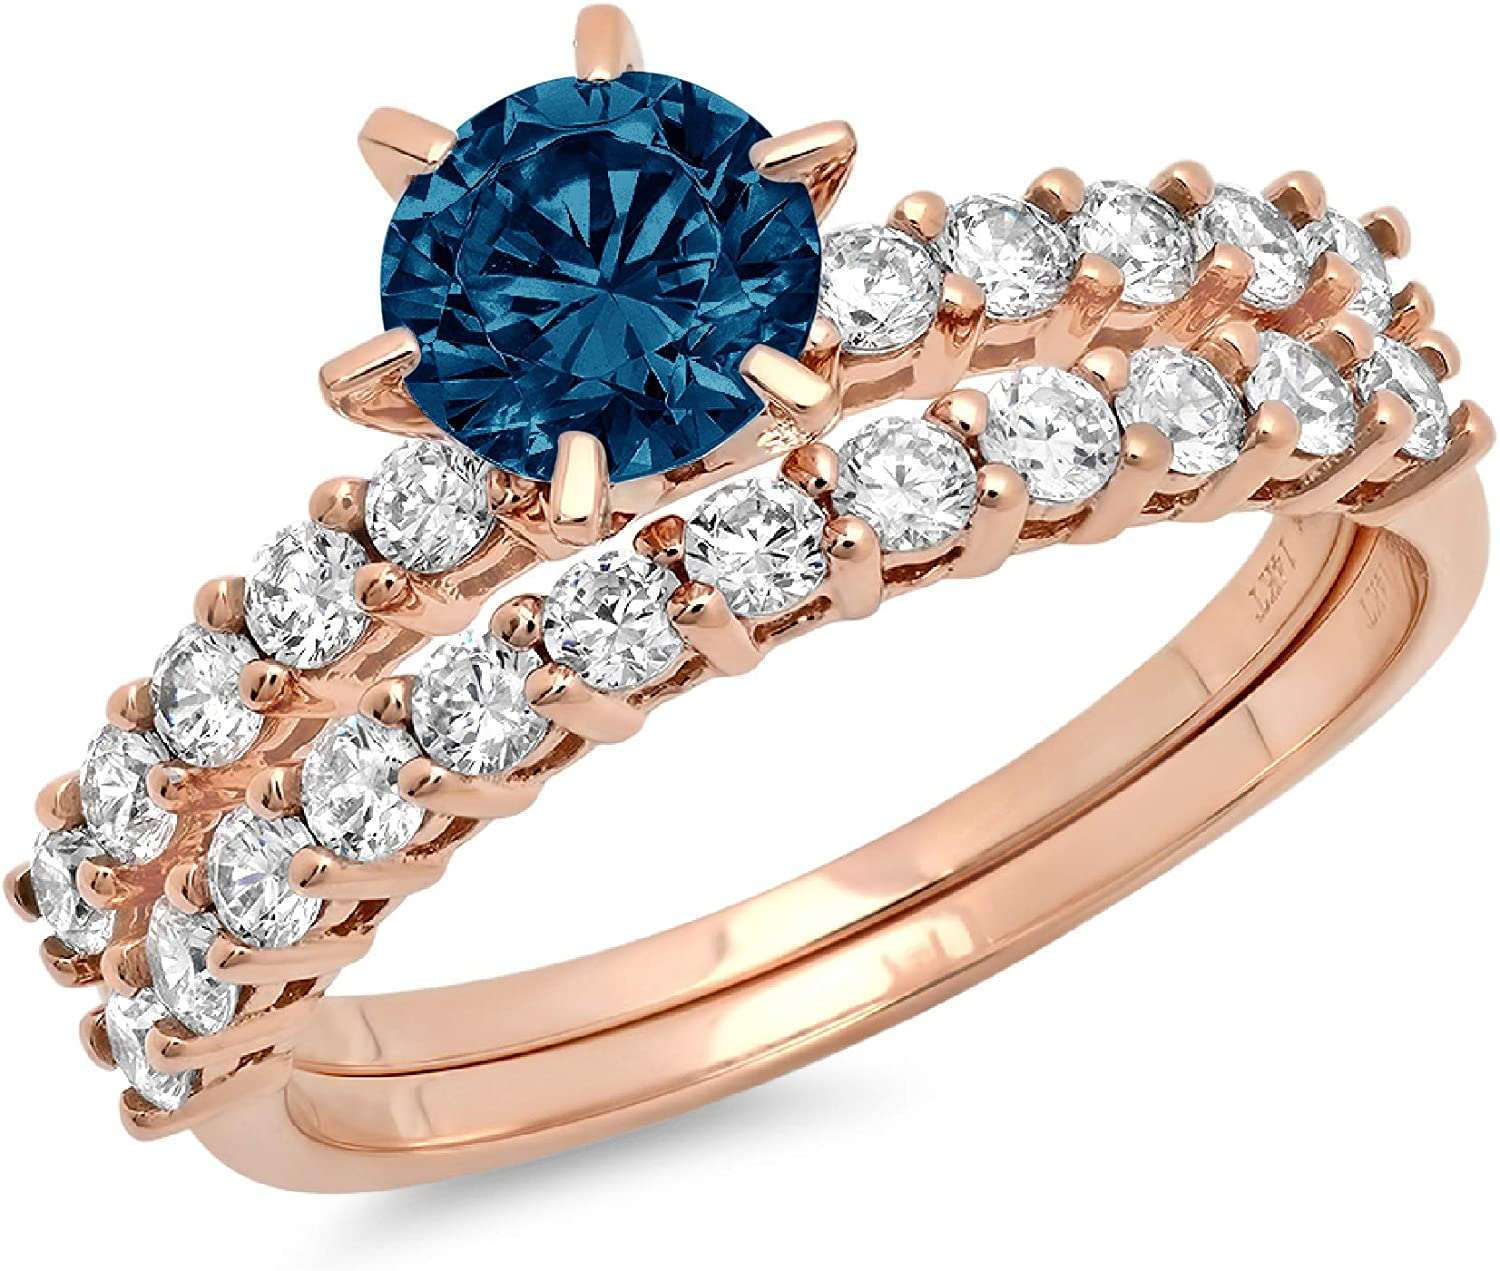 3.0ct Round Cut Pave Solitaire Overseas parallel import regular item Mesa Mall Natural Blue Topaz Accent London